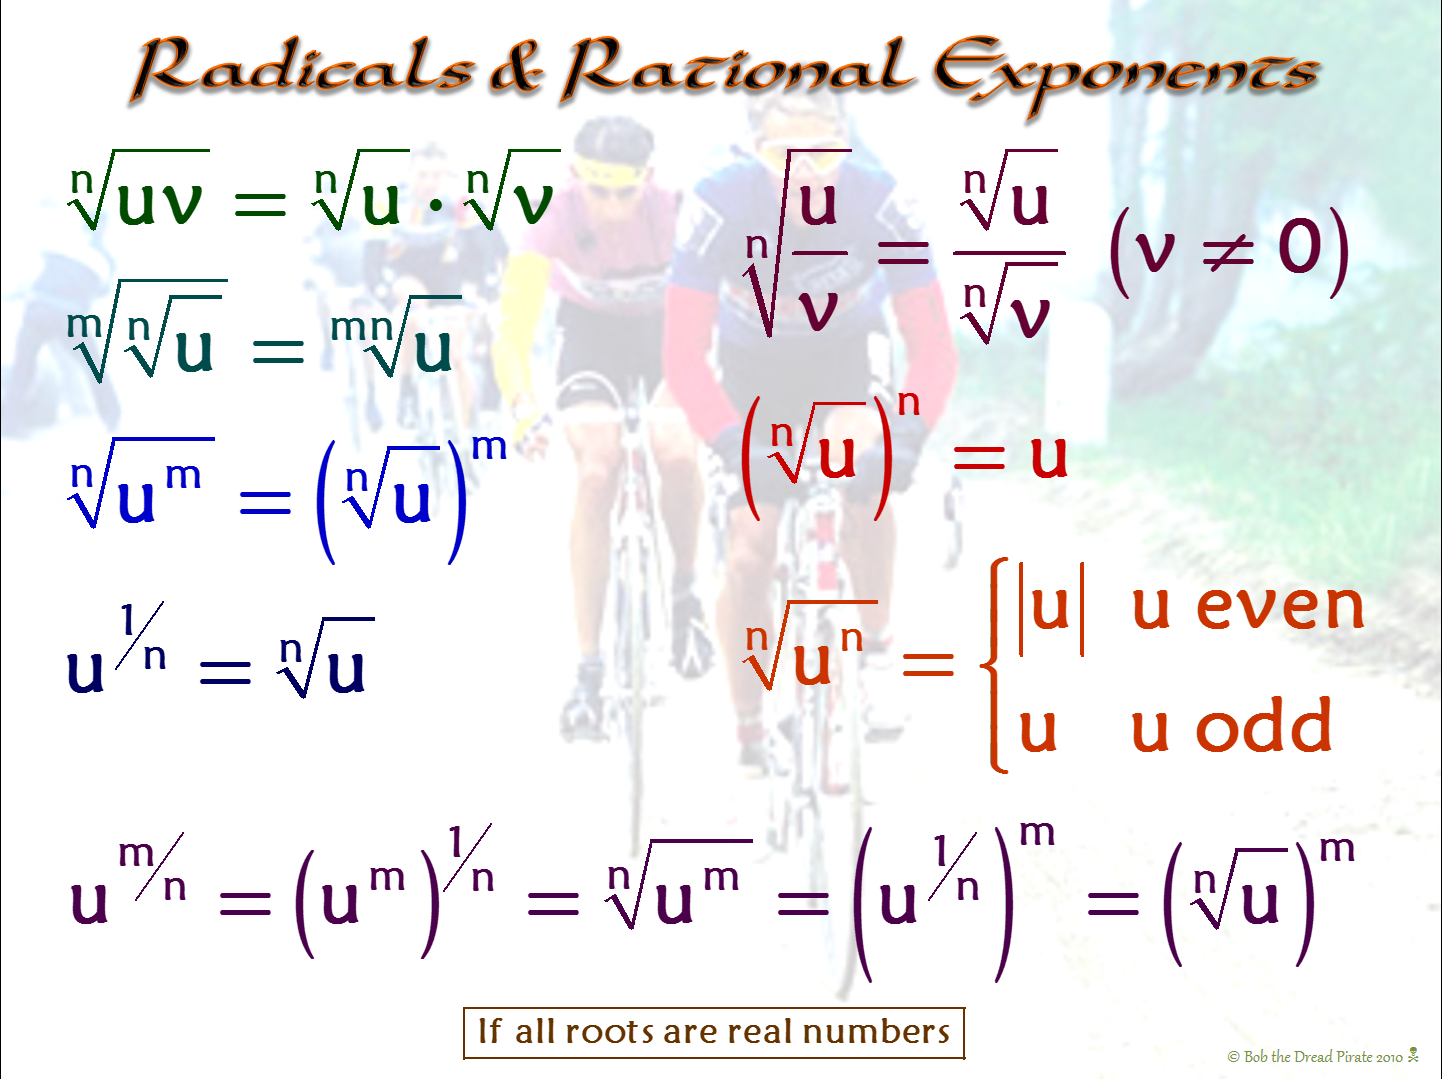 Rules for Radicals & Rational Exponents Radicals math